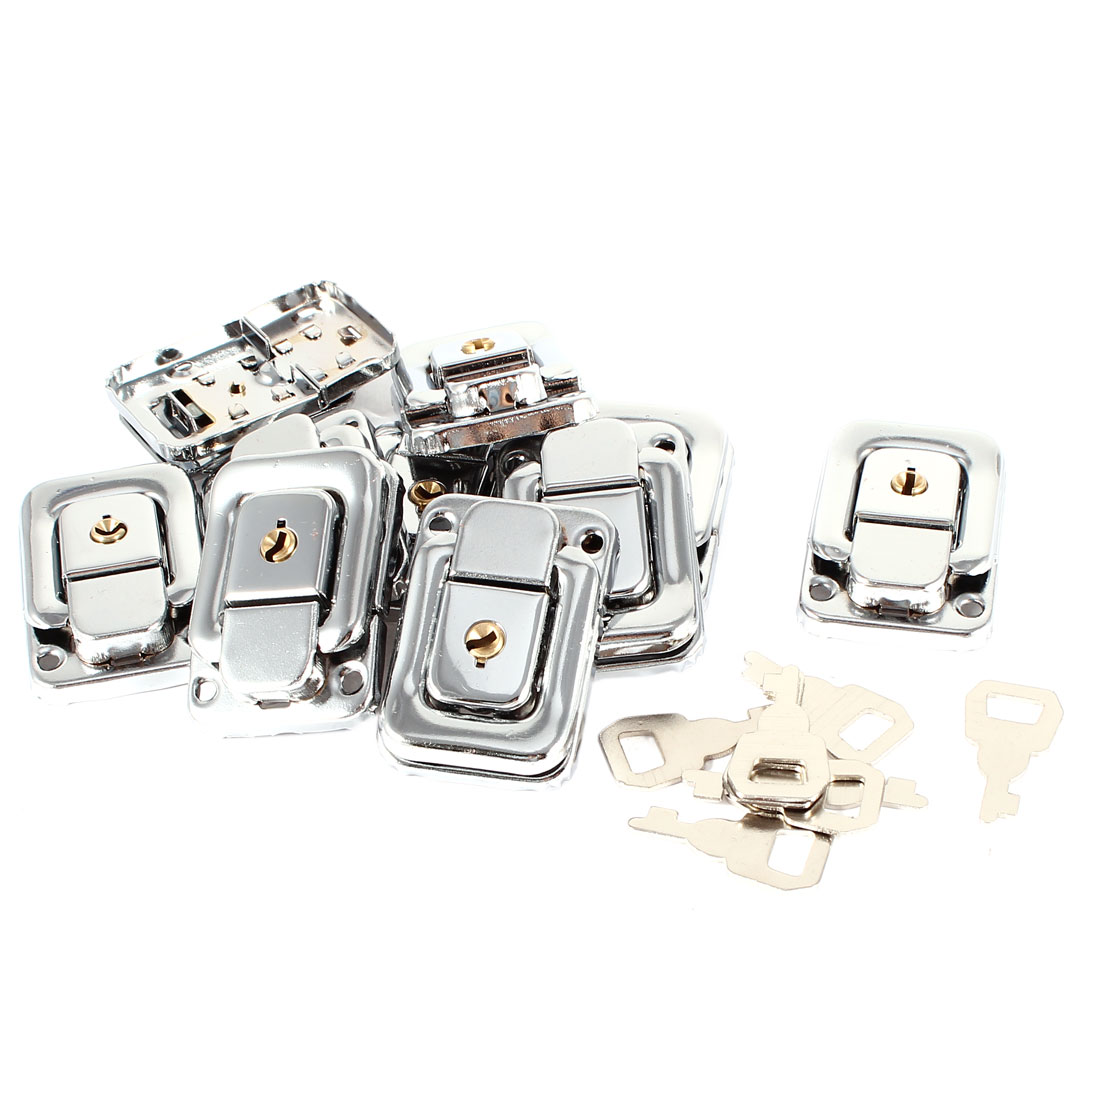 10 Pcs Silver Tone Spring Loaded Case Boxes Chest Toggle Catch Latch w Keys